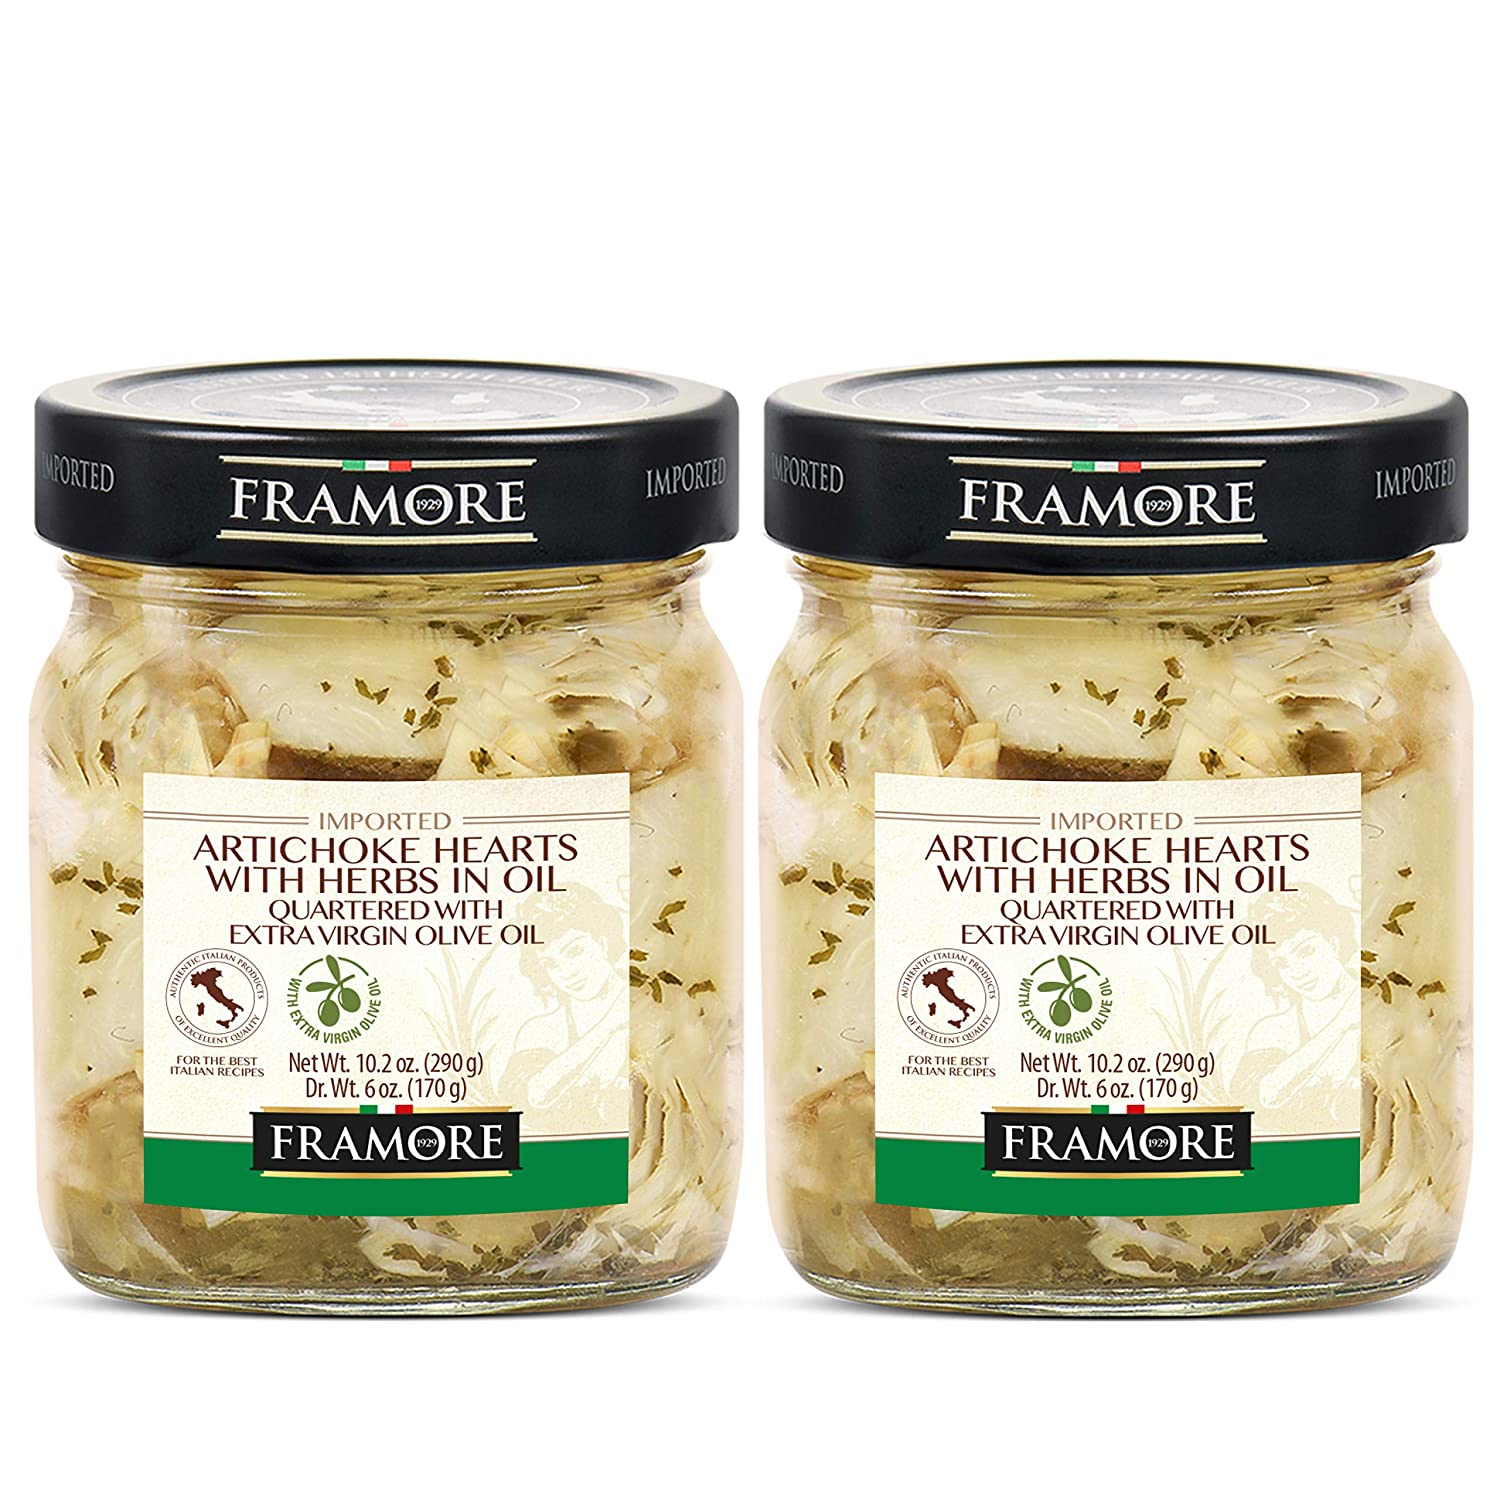 FRAMORE, Artichoke hearts quartered marinated with herbs with olive oil in jar 10.2 Ounce Two Pieces Antipasto deli foods Imported from Italy